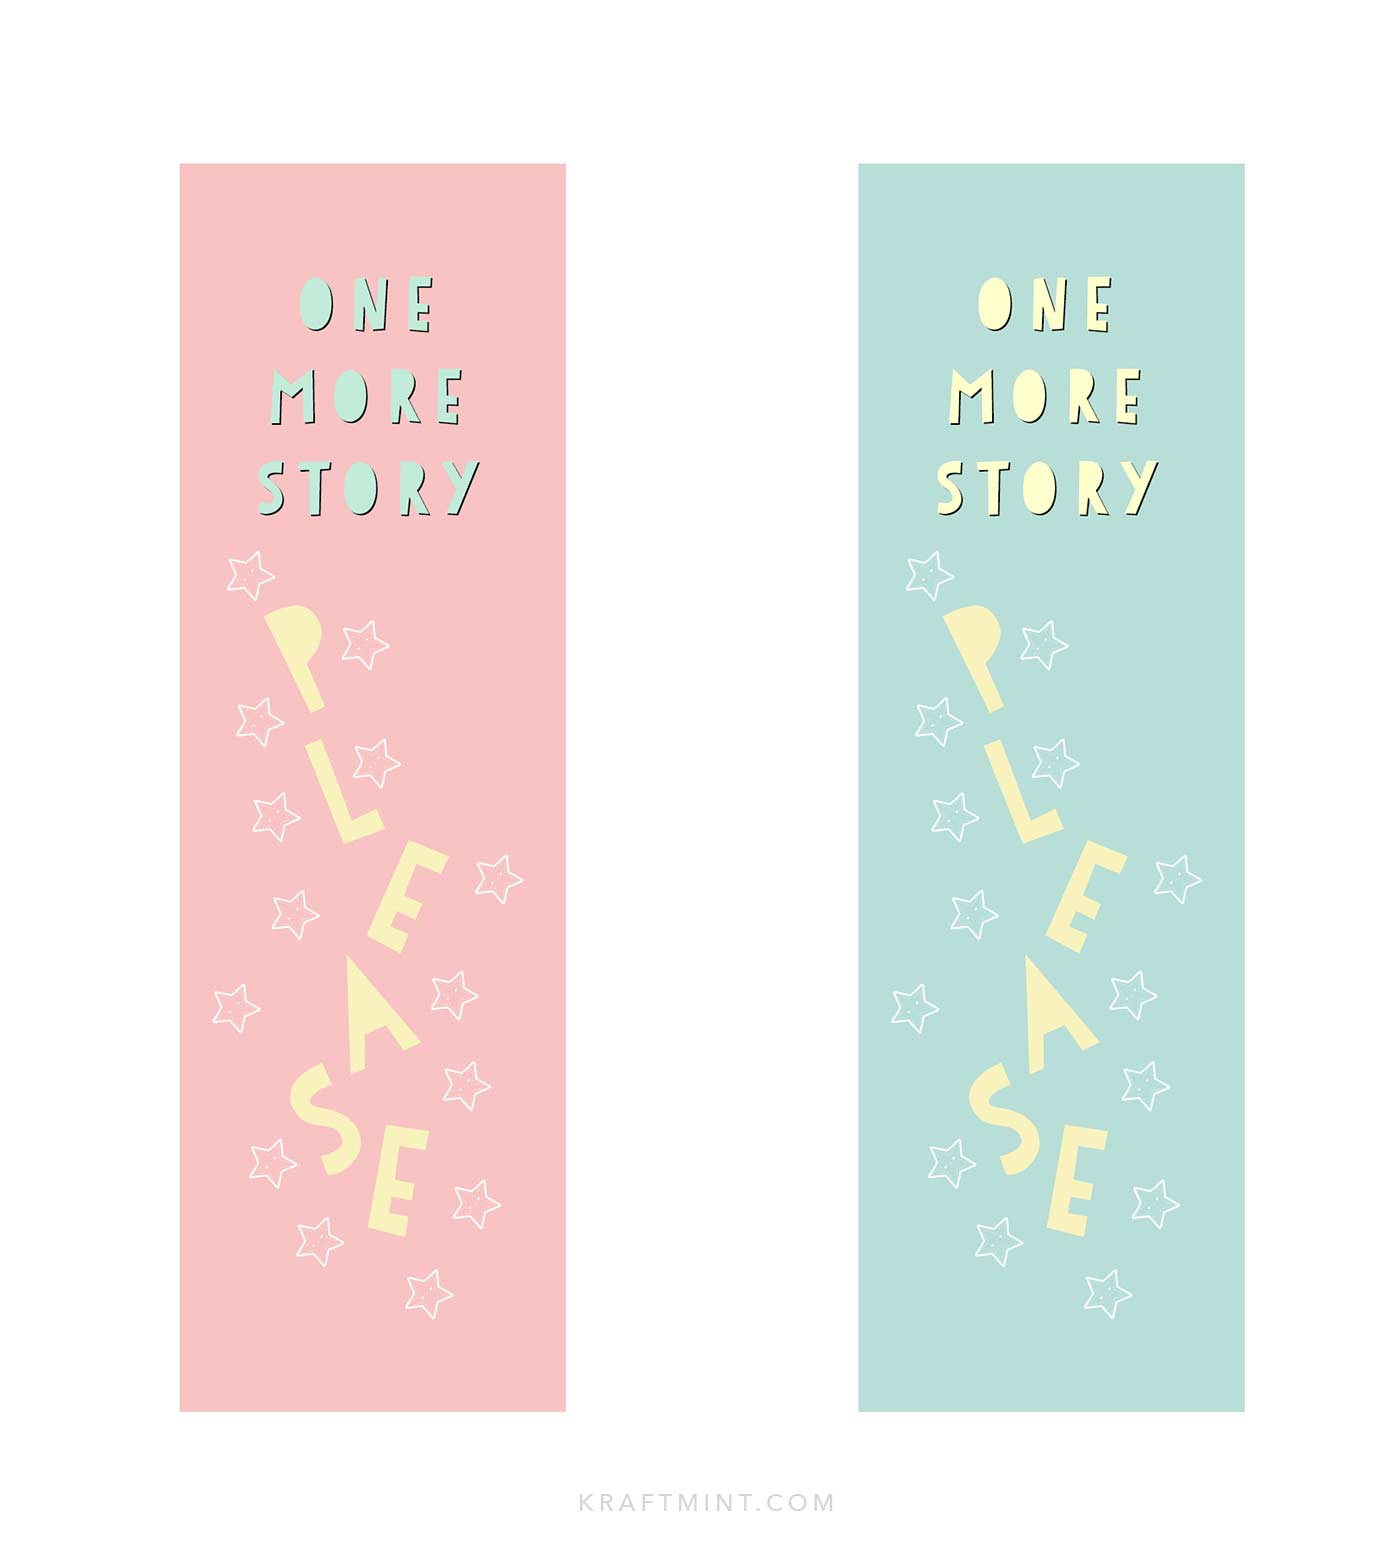 Printable paper bookmarks